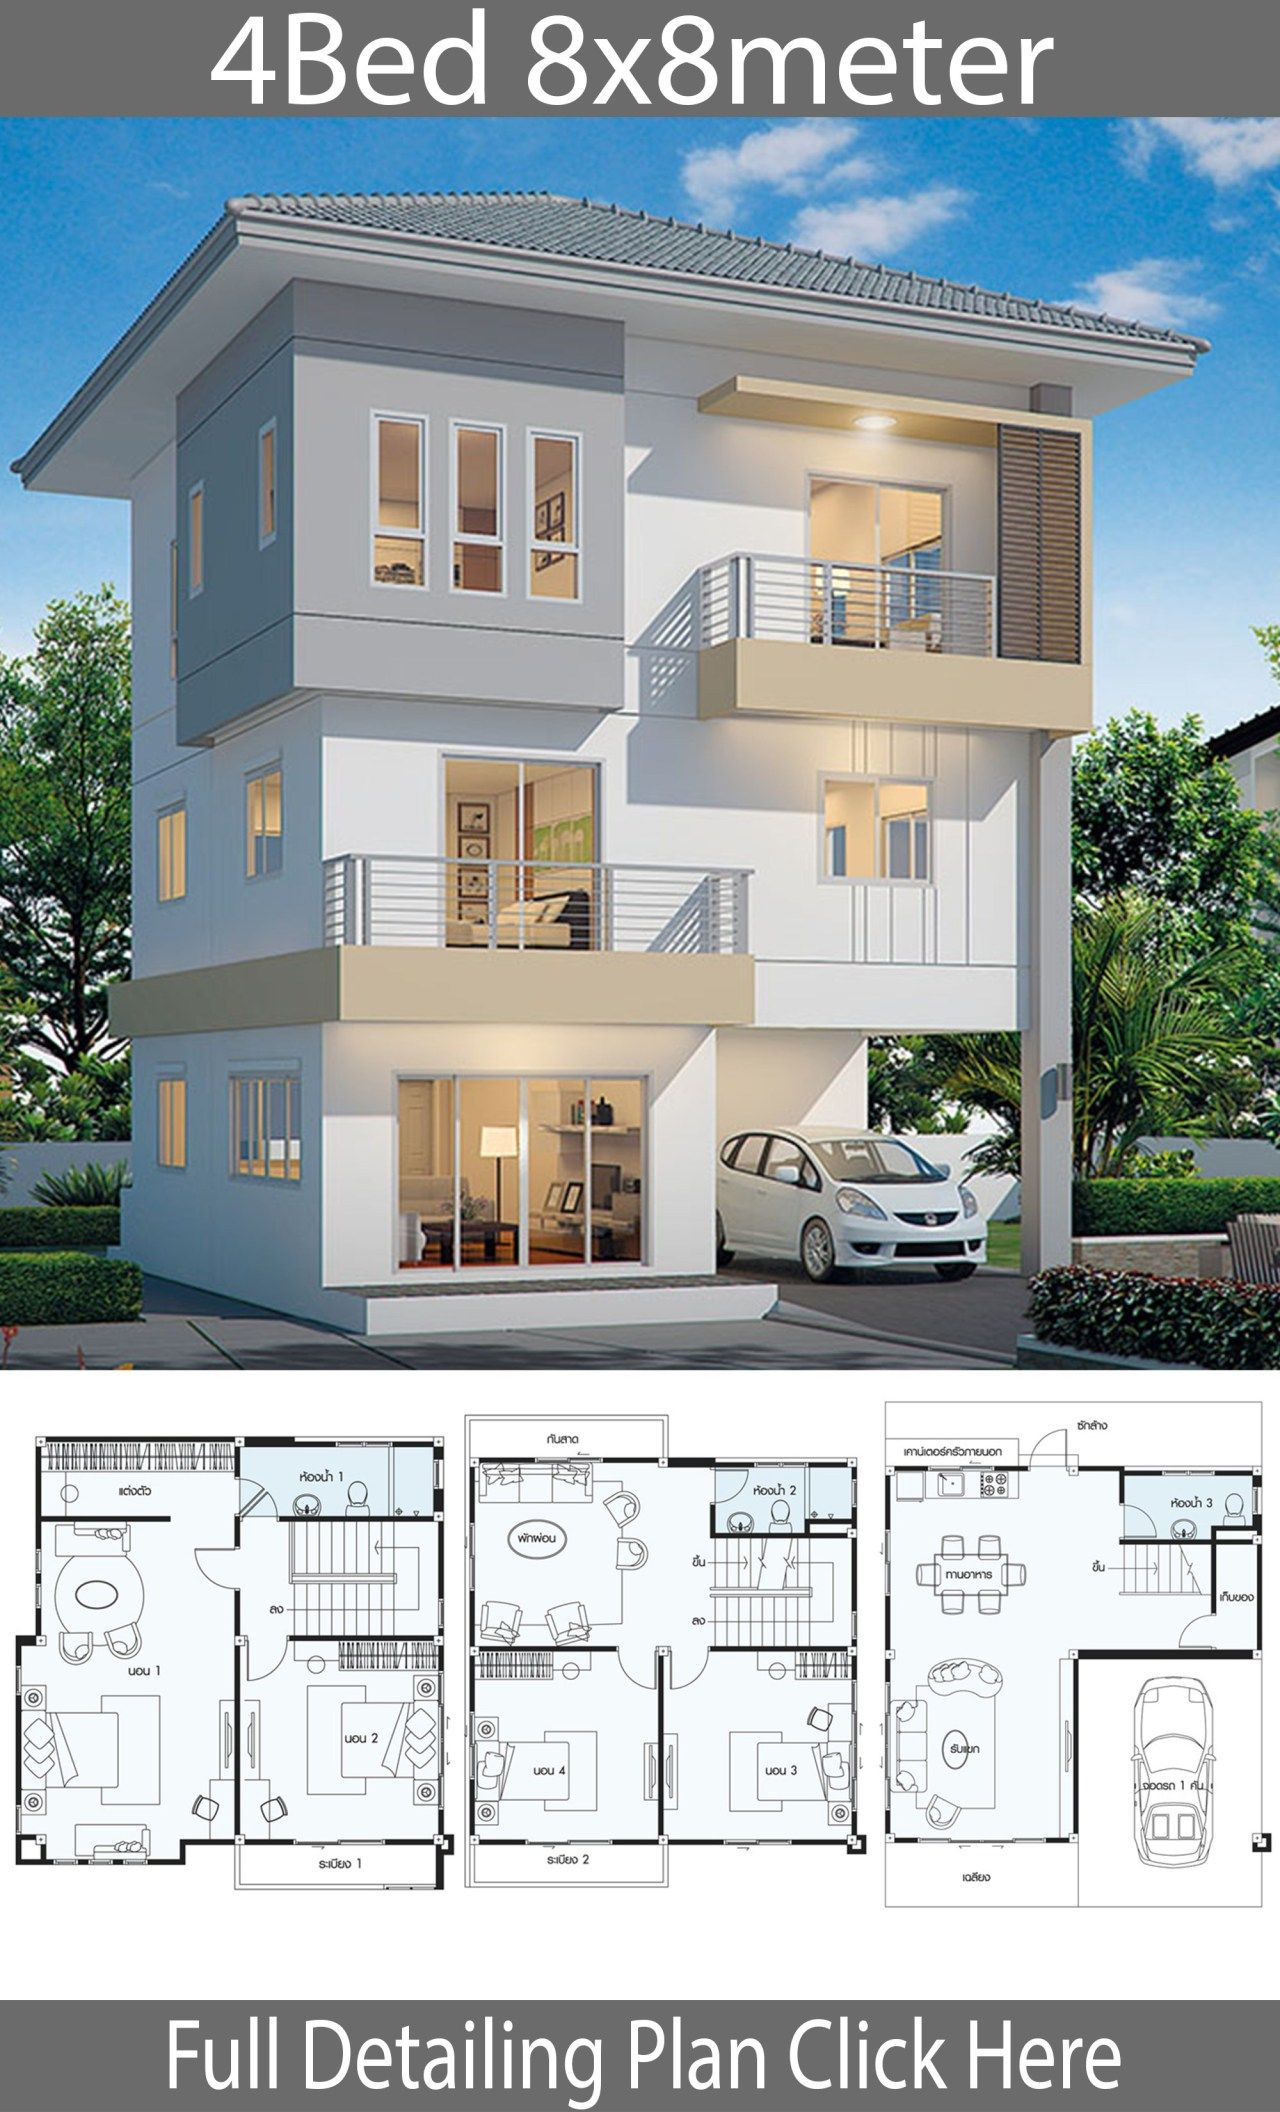 House design plan 8x8m with 4 bedrooms - Home Ideas | Duplex house design, 3 storey house design ...